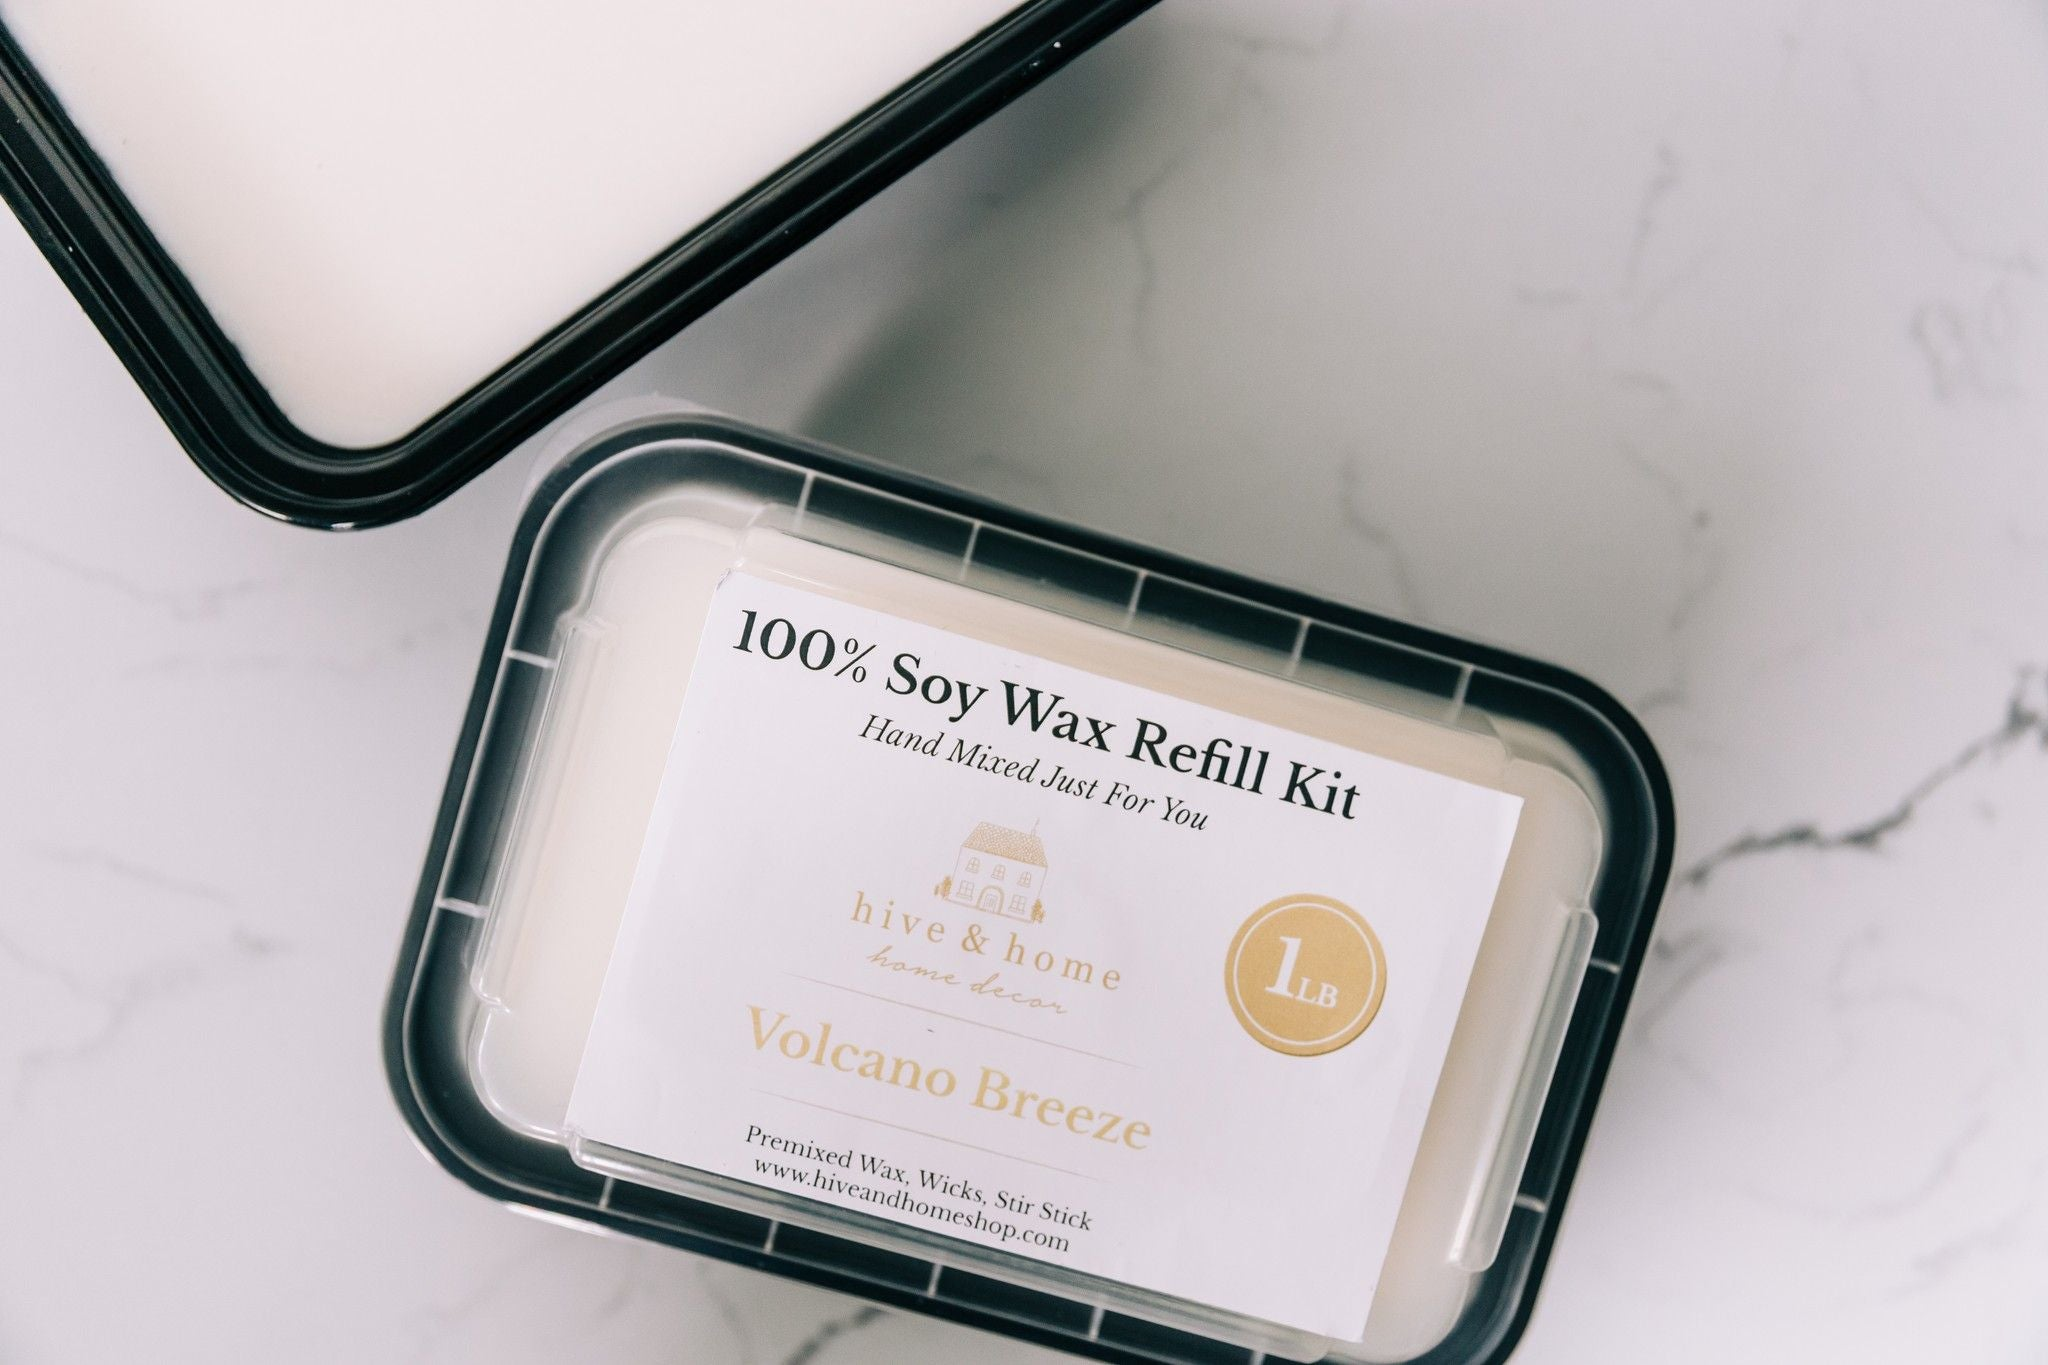 100% Soy Wax Refill Kit 2 Sizes